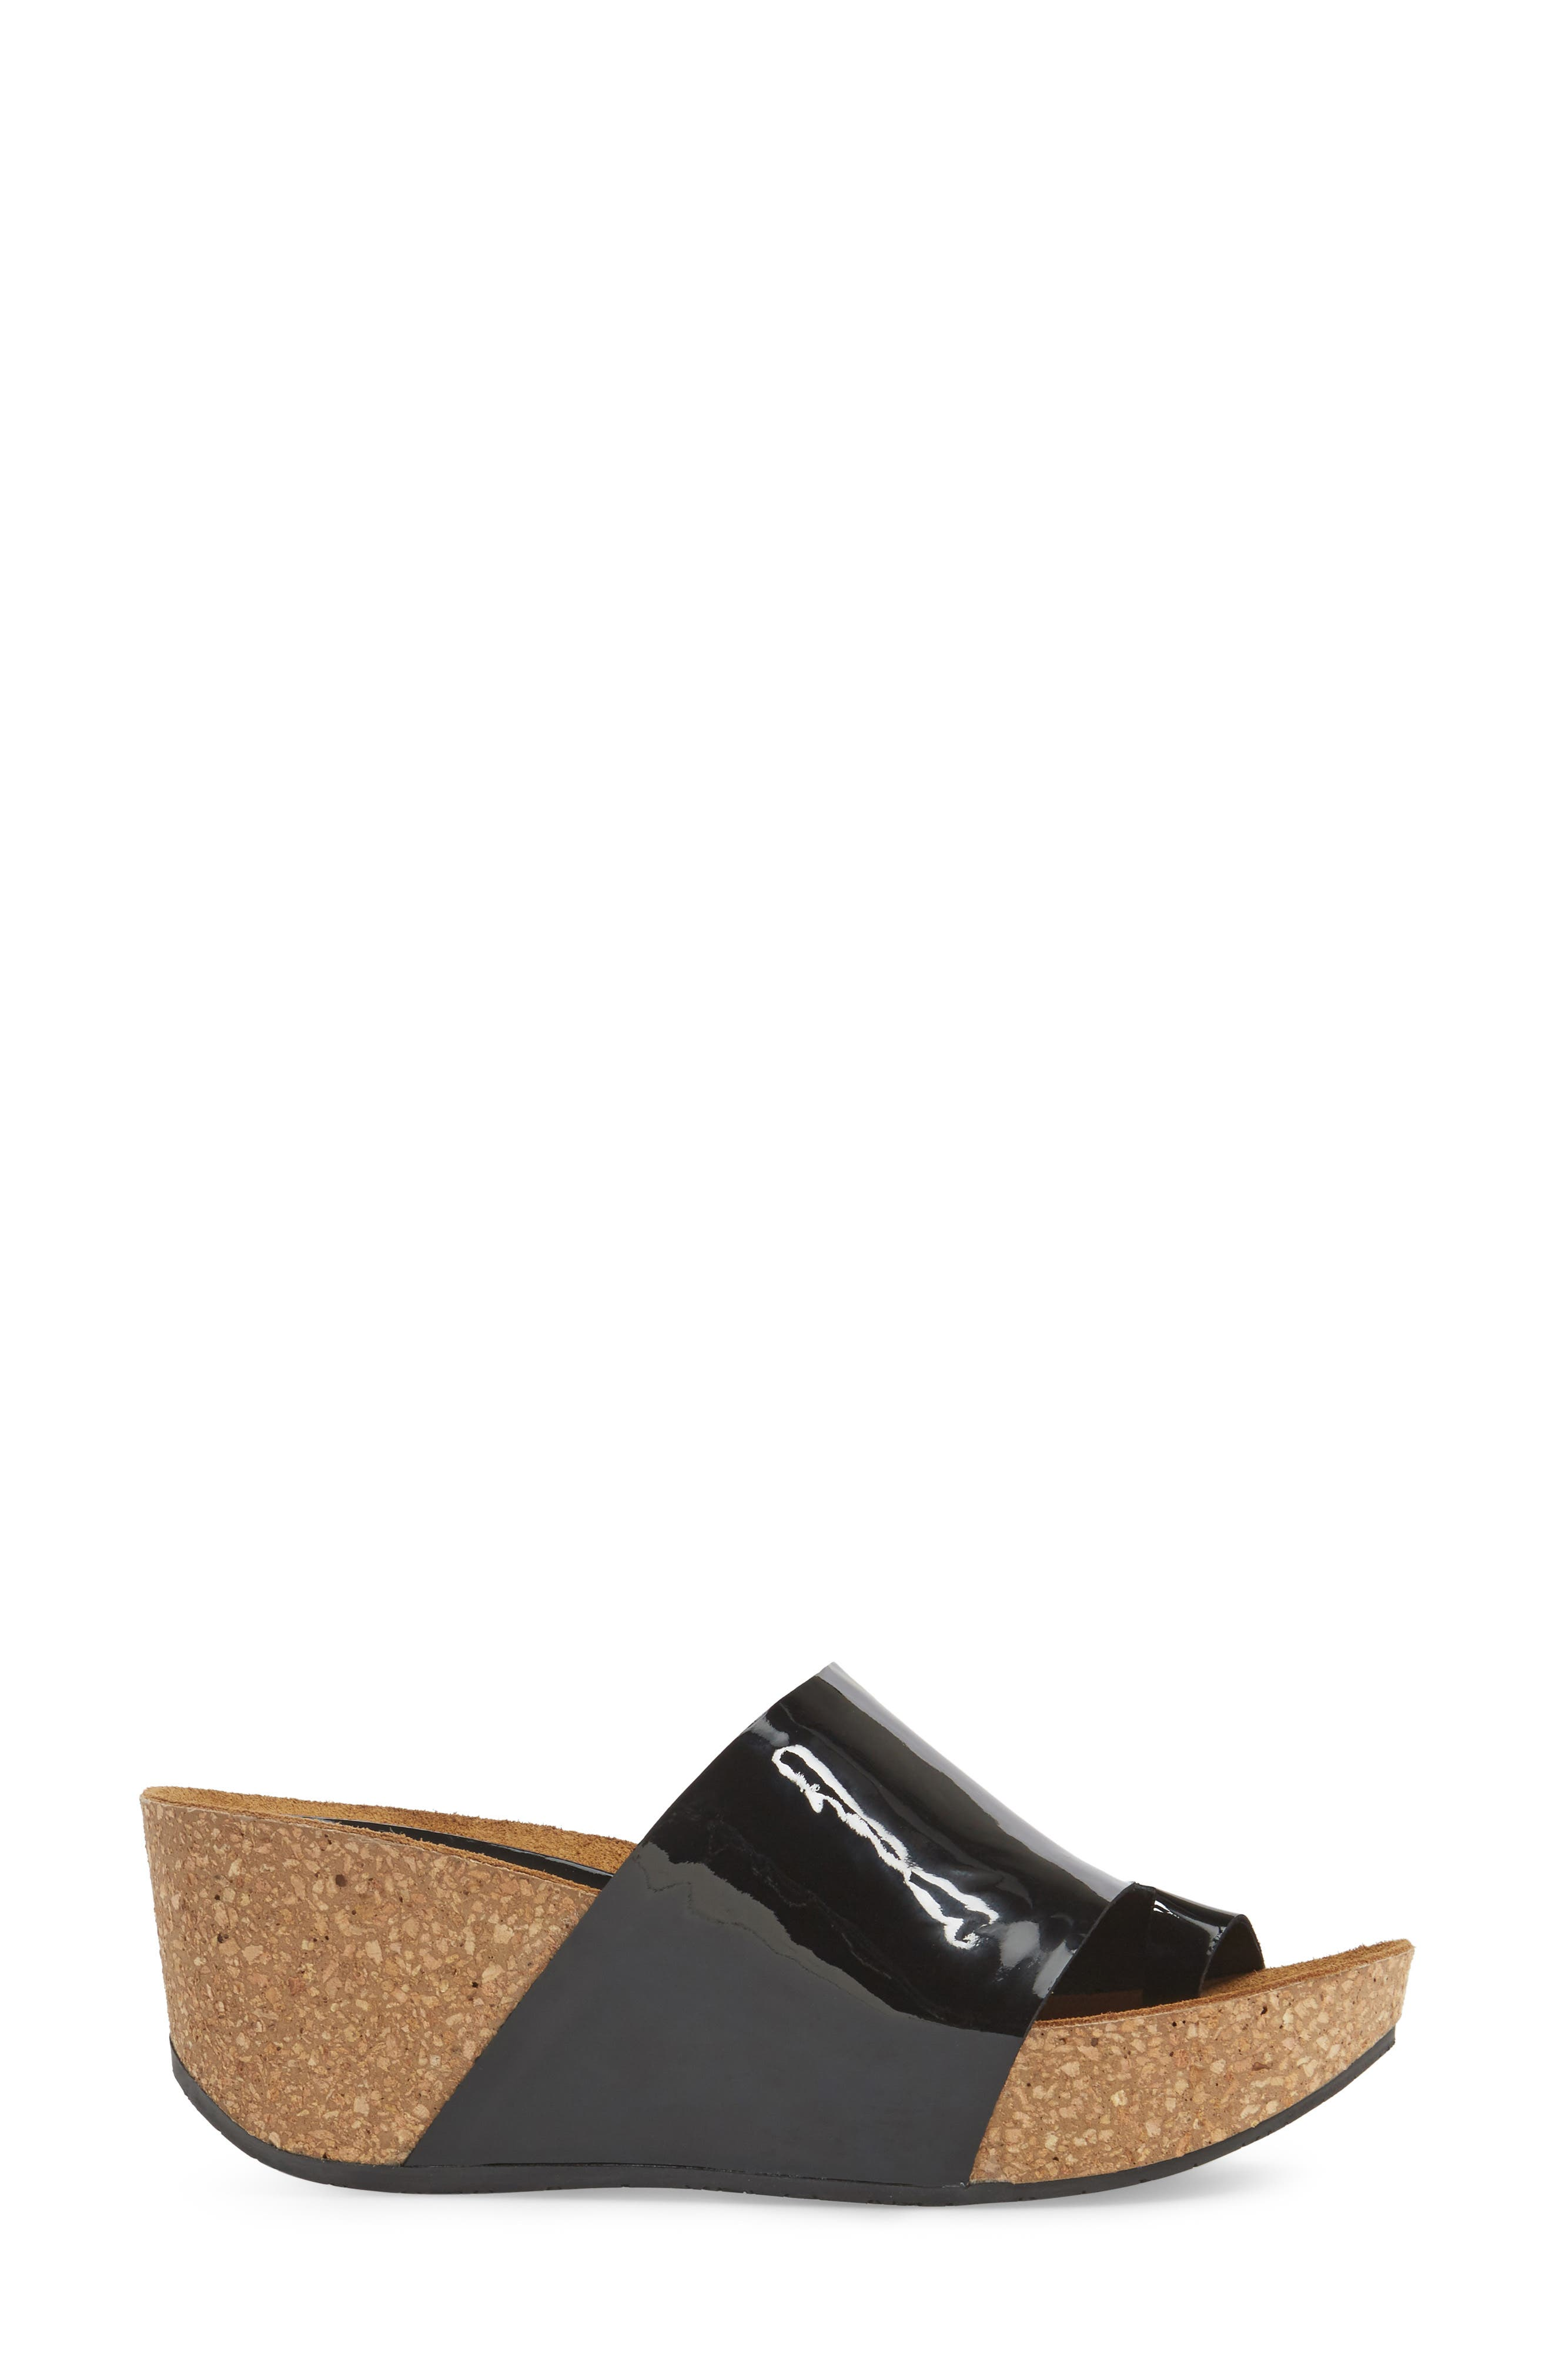 Donald J Pliner Ginie Platform Wedge Sandal,                             Alternate thumbnail 20, color,